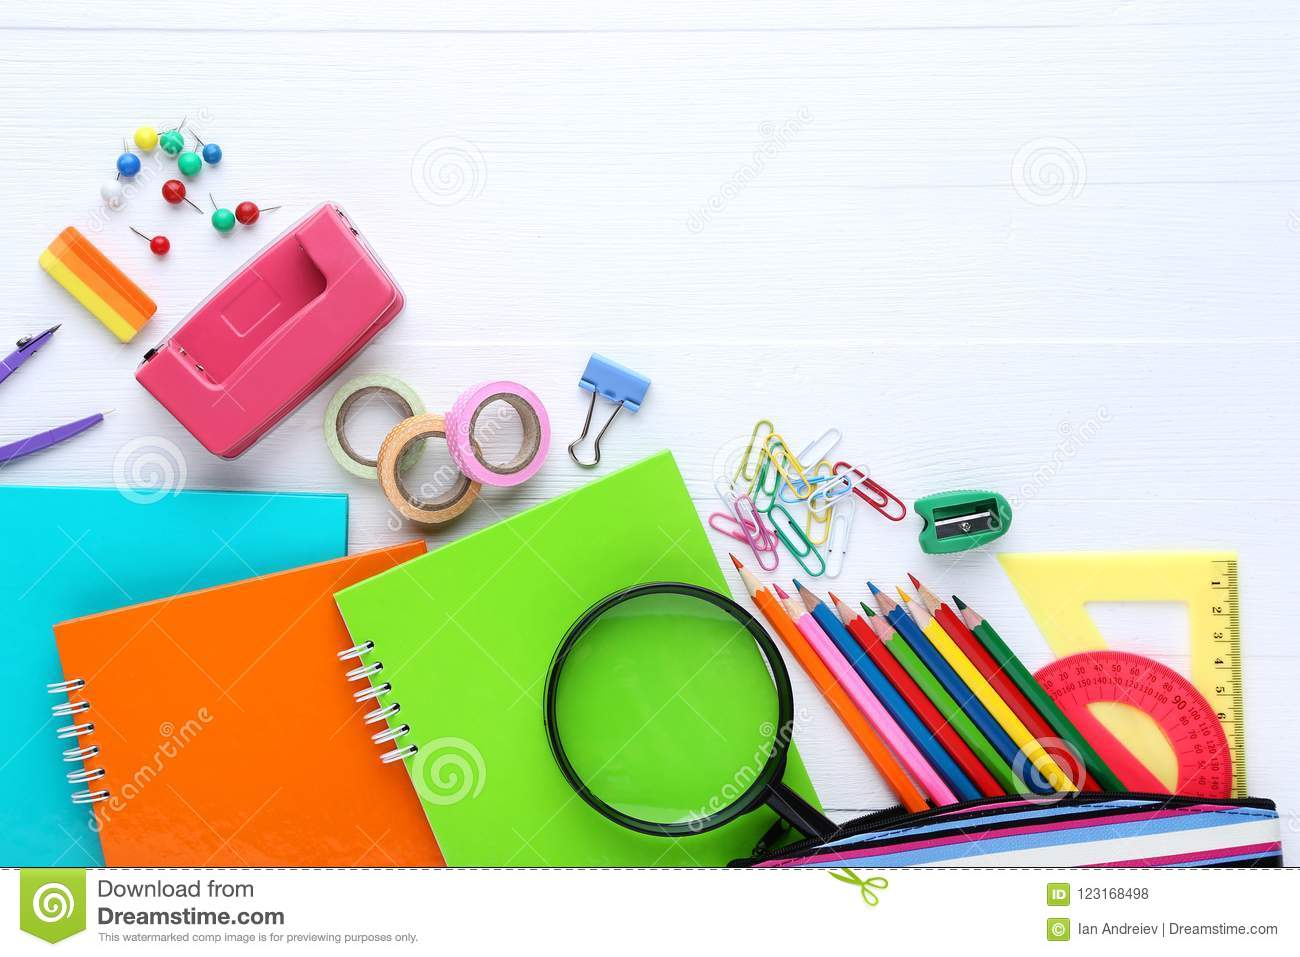 School supplies stock photo  Image of college, class - 123168498